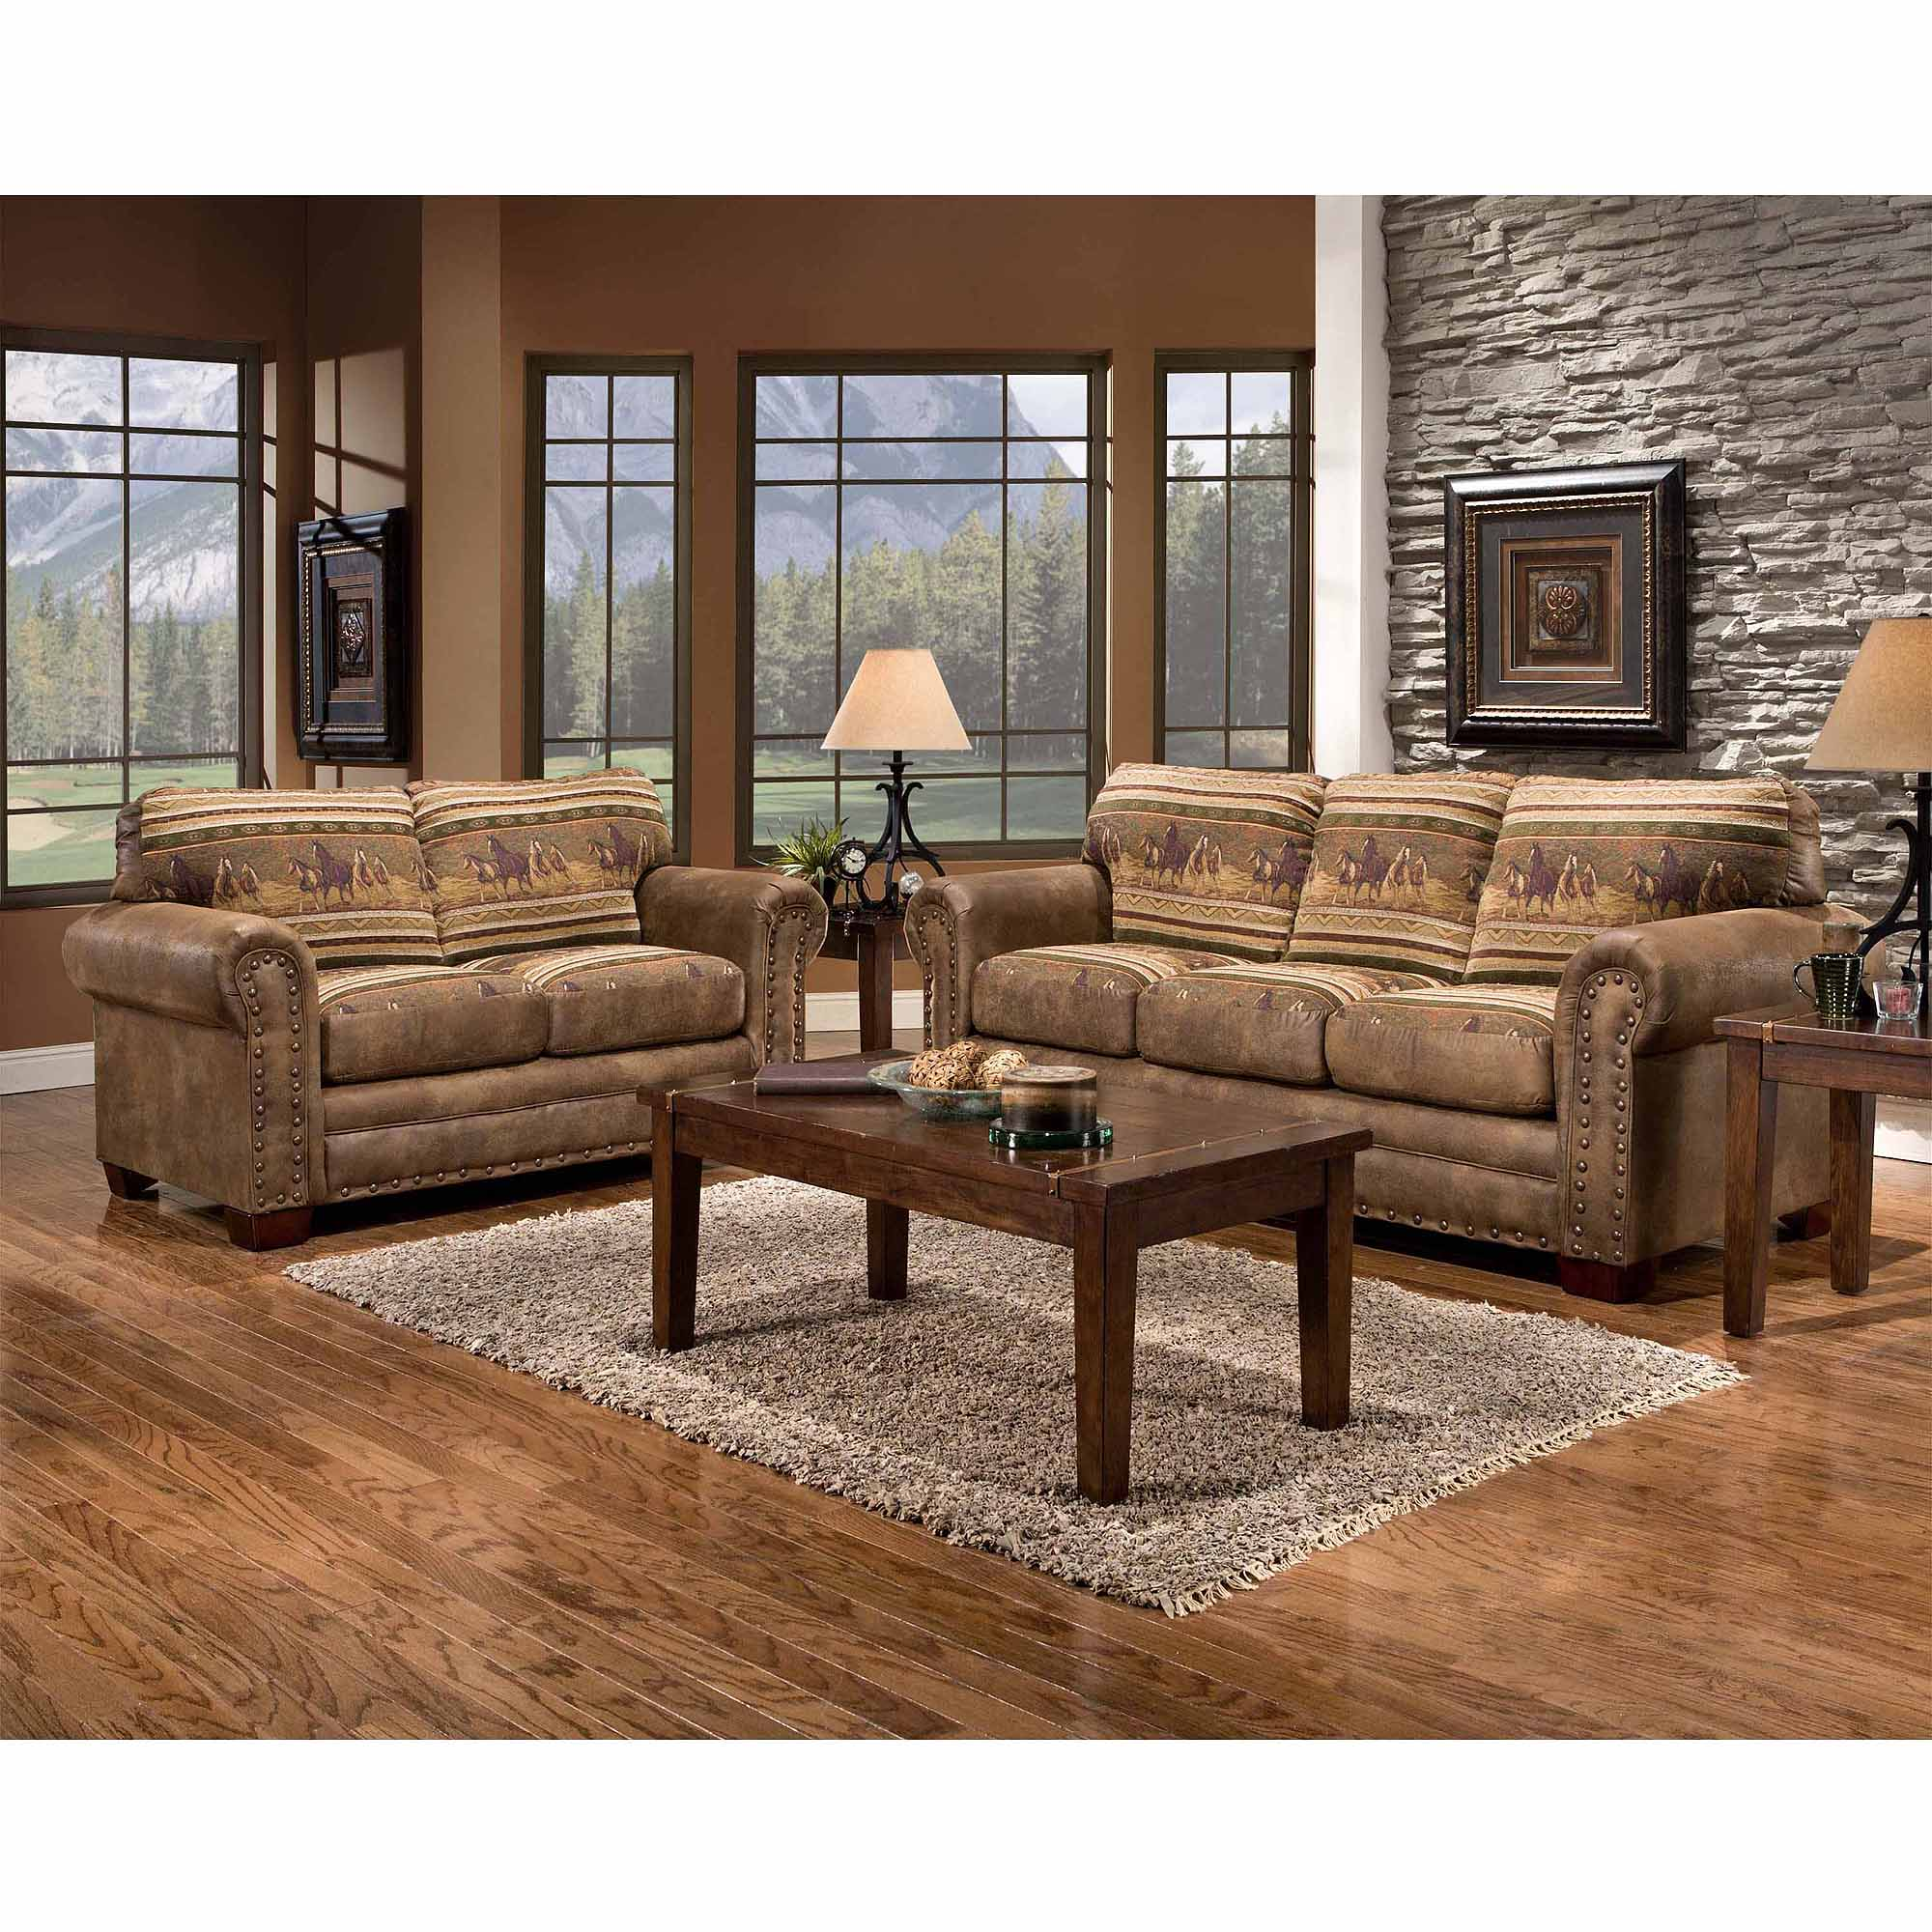 American Furniture Classics Wild Horses 4 Piece Set Walmart